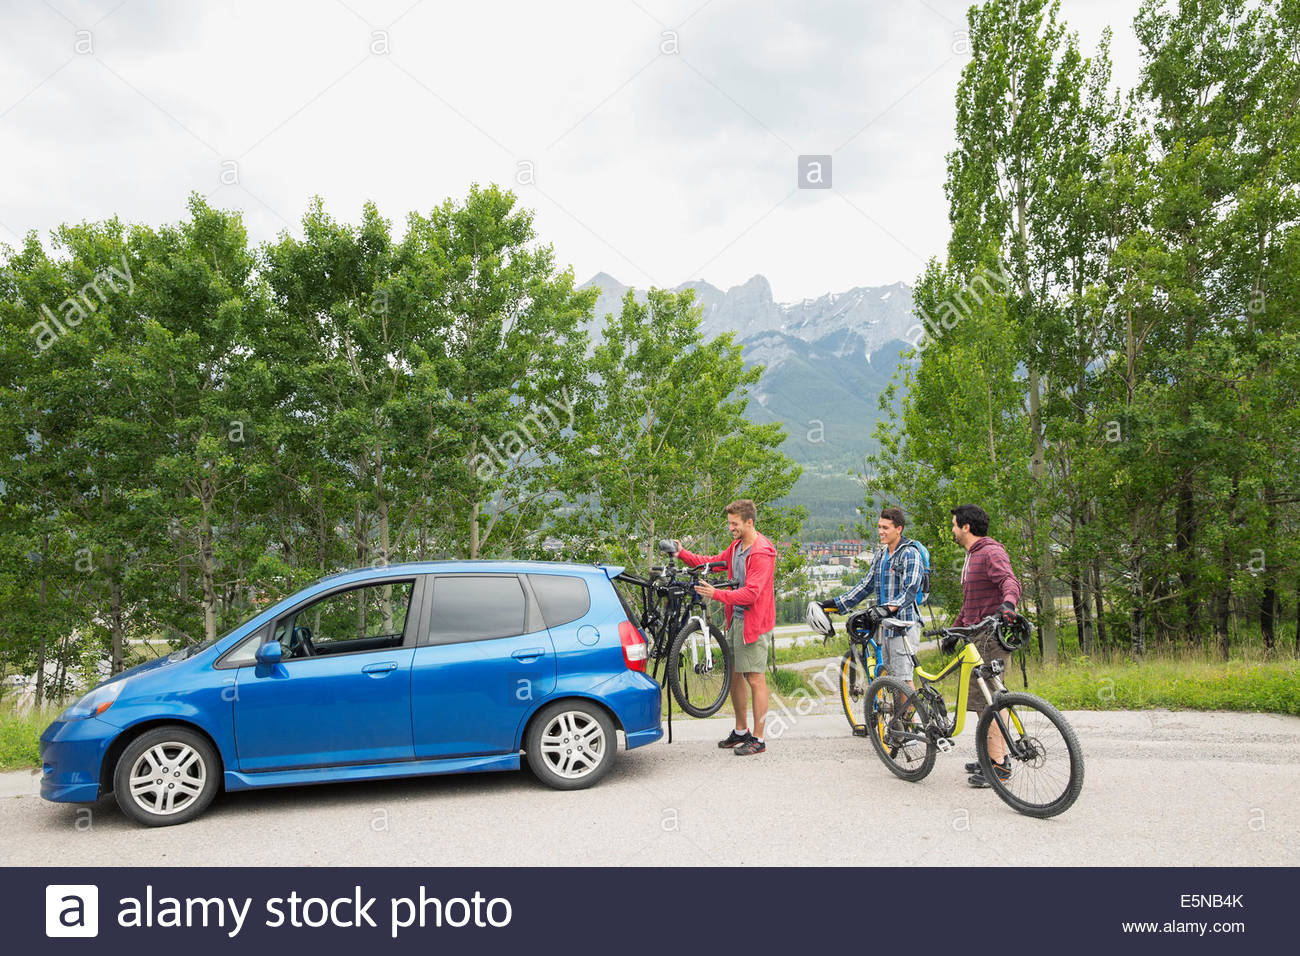 Men removing bicycles from bike rack on car - Stock Image